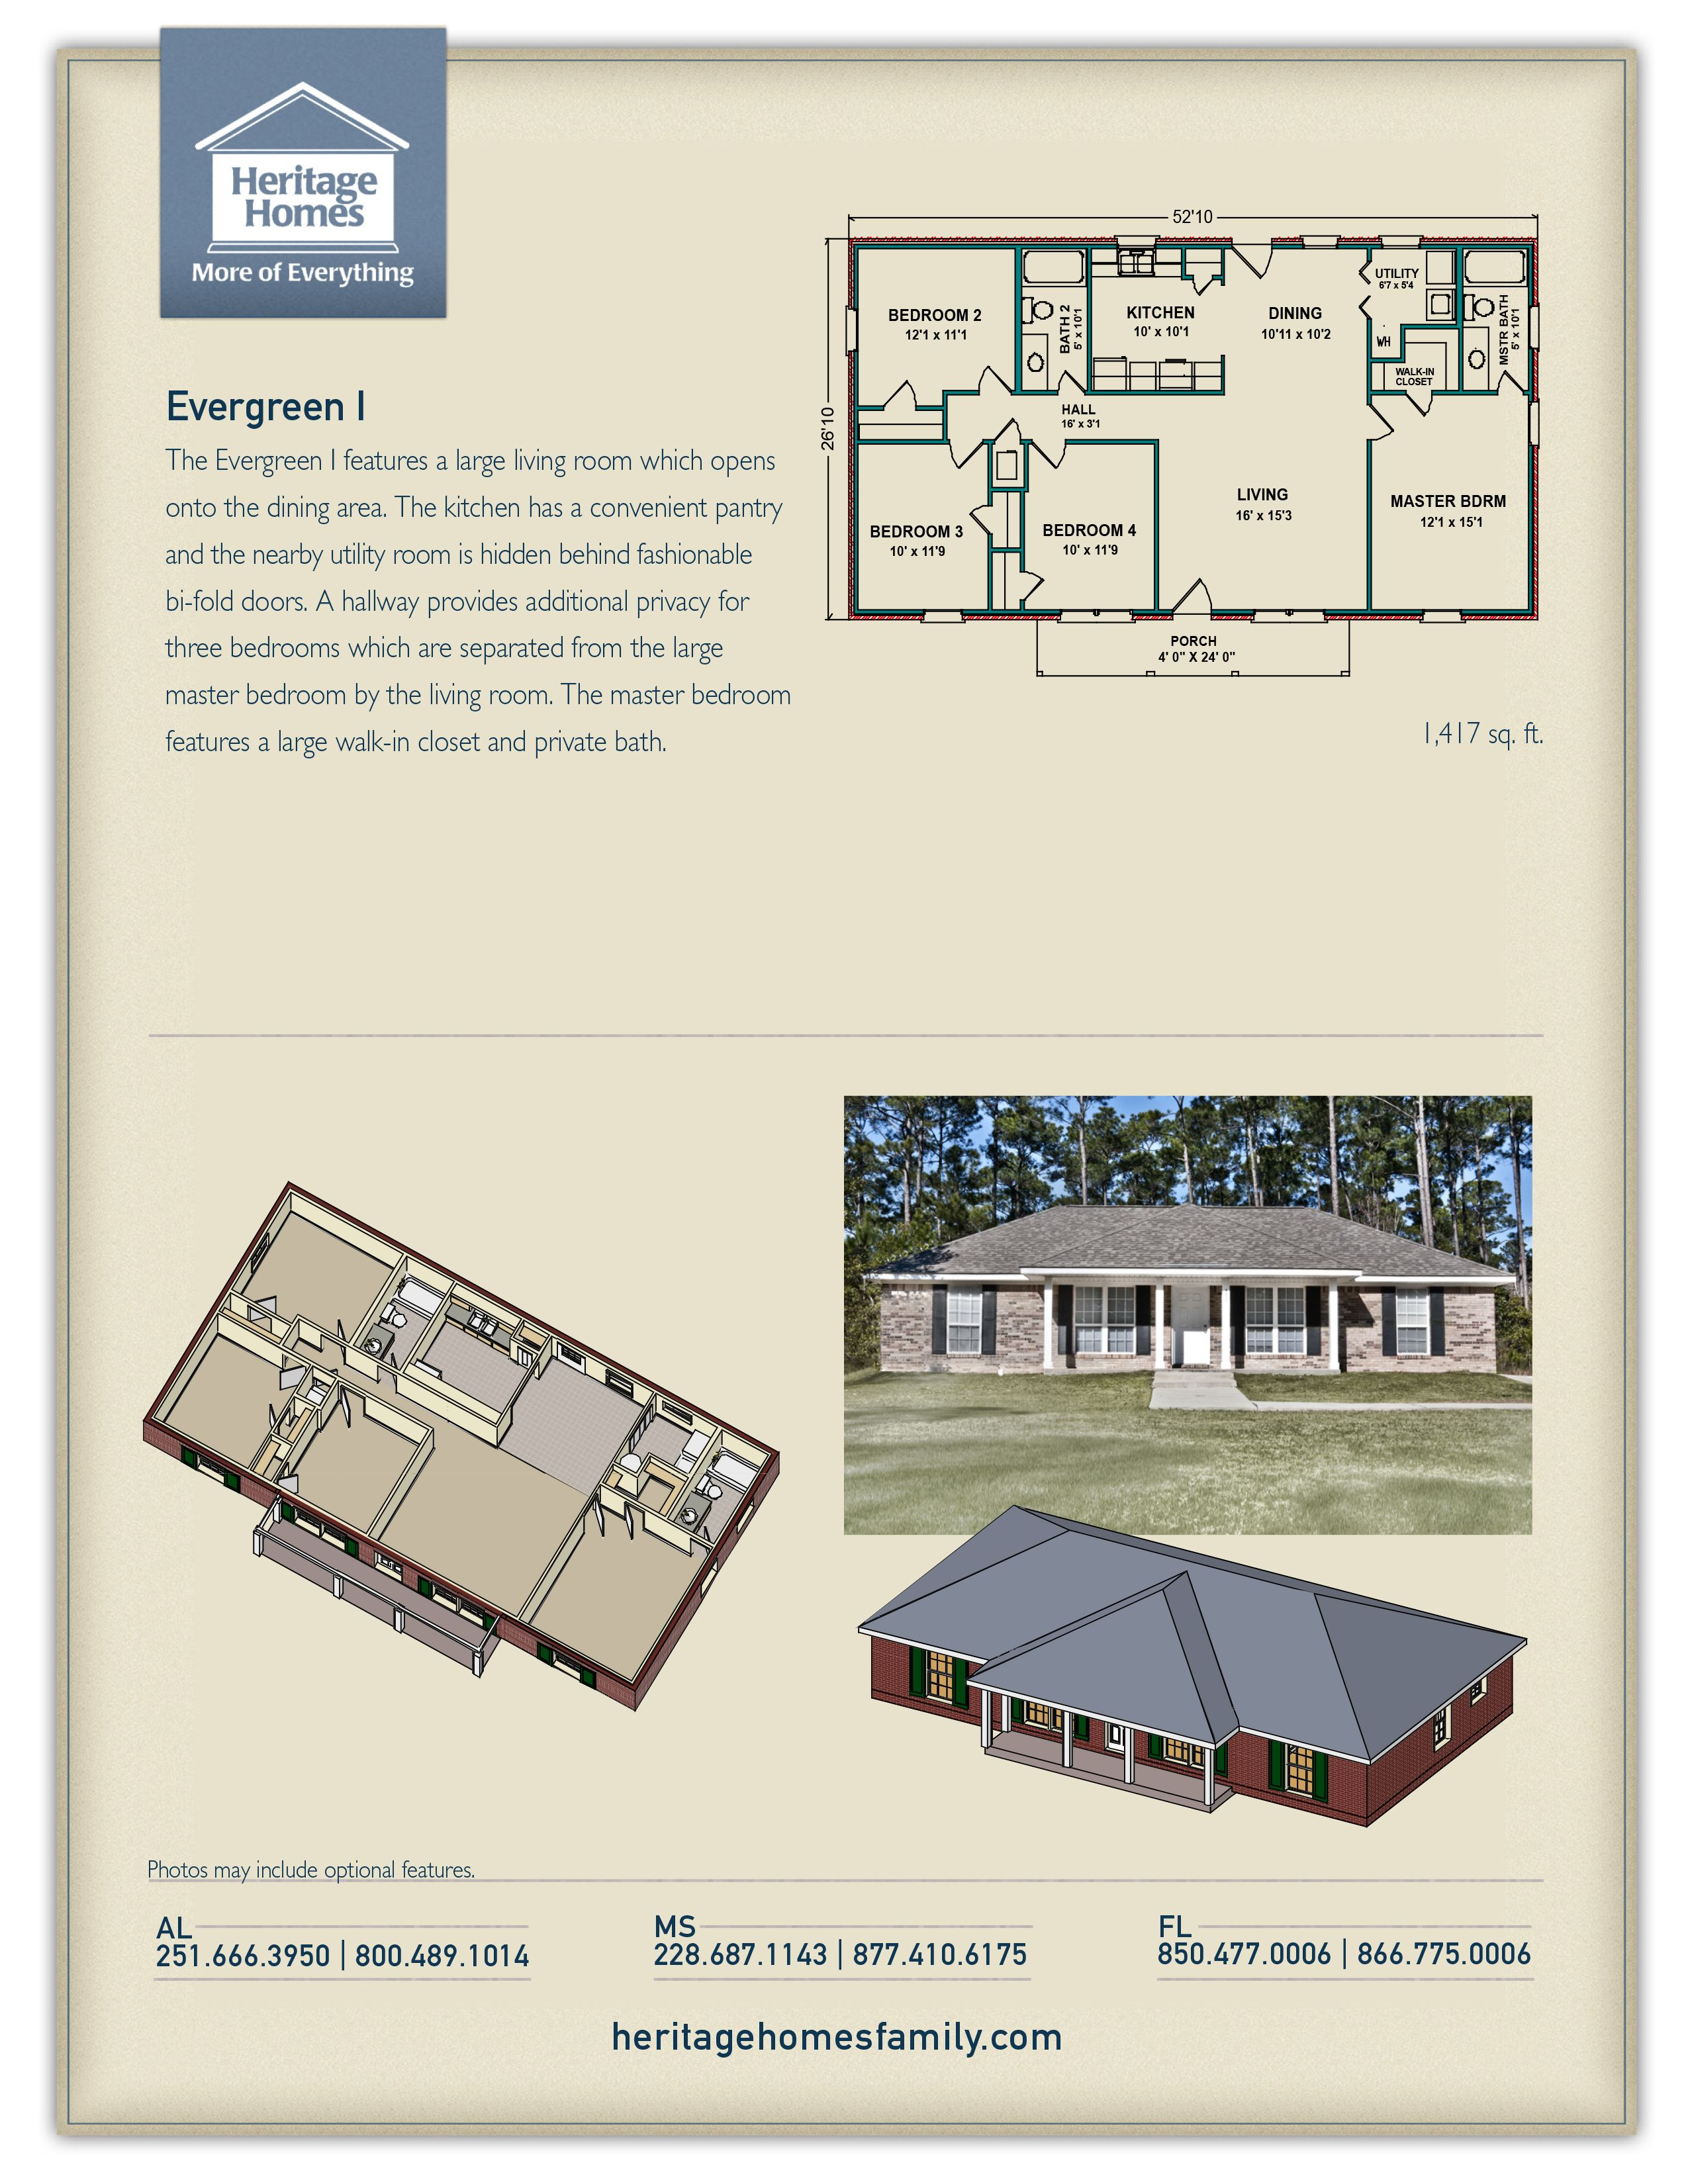 Heritage Homes Evergreen I Floor Plan Floor Plans How To Plan 4 Bedroom House Plans